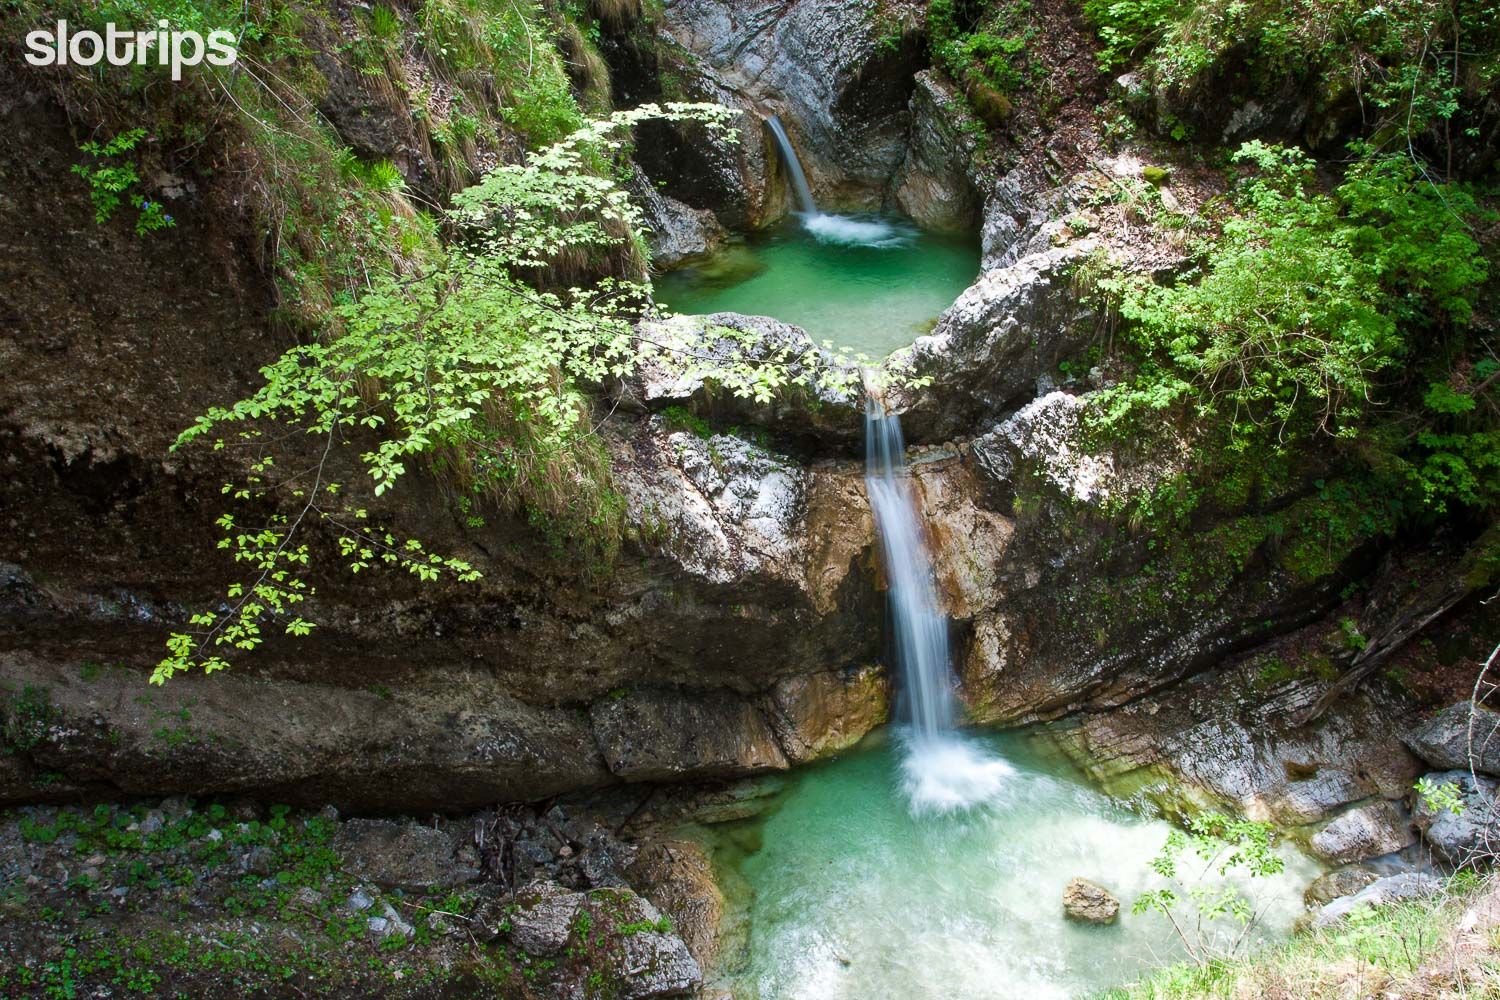 Waterfall in Fratarica canyon in the Soca valley, Slovenia